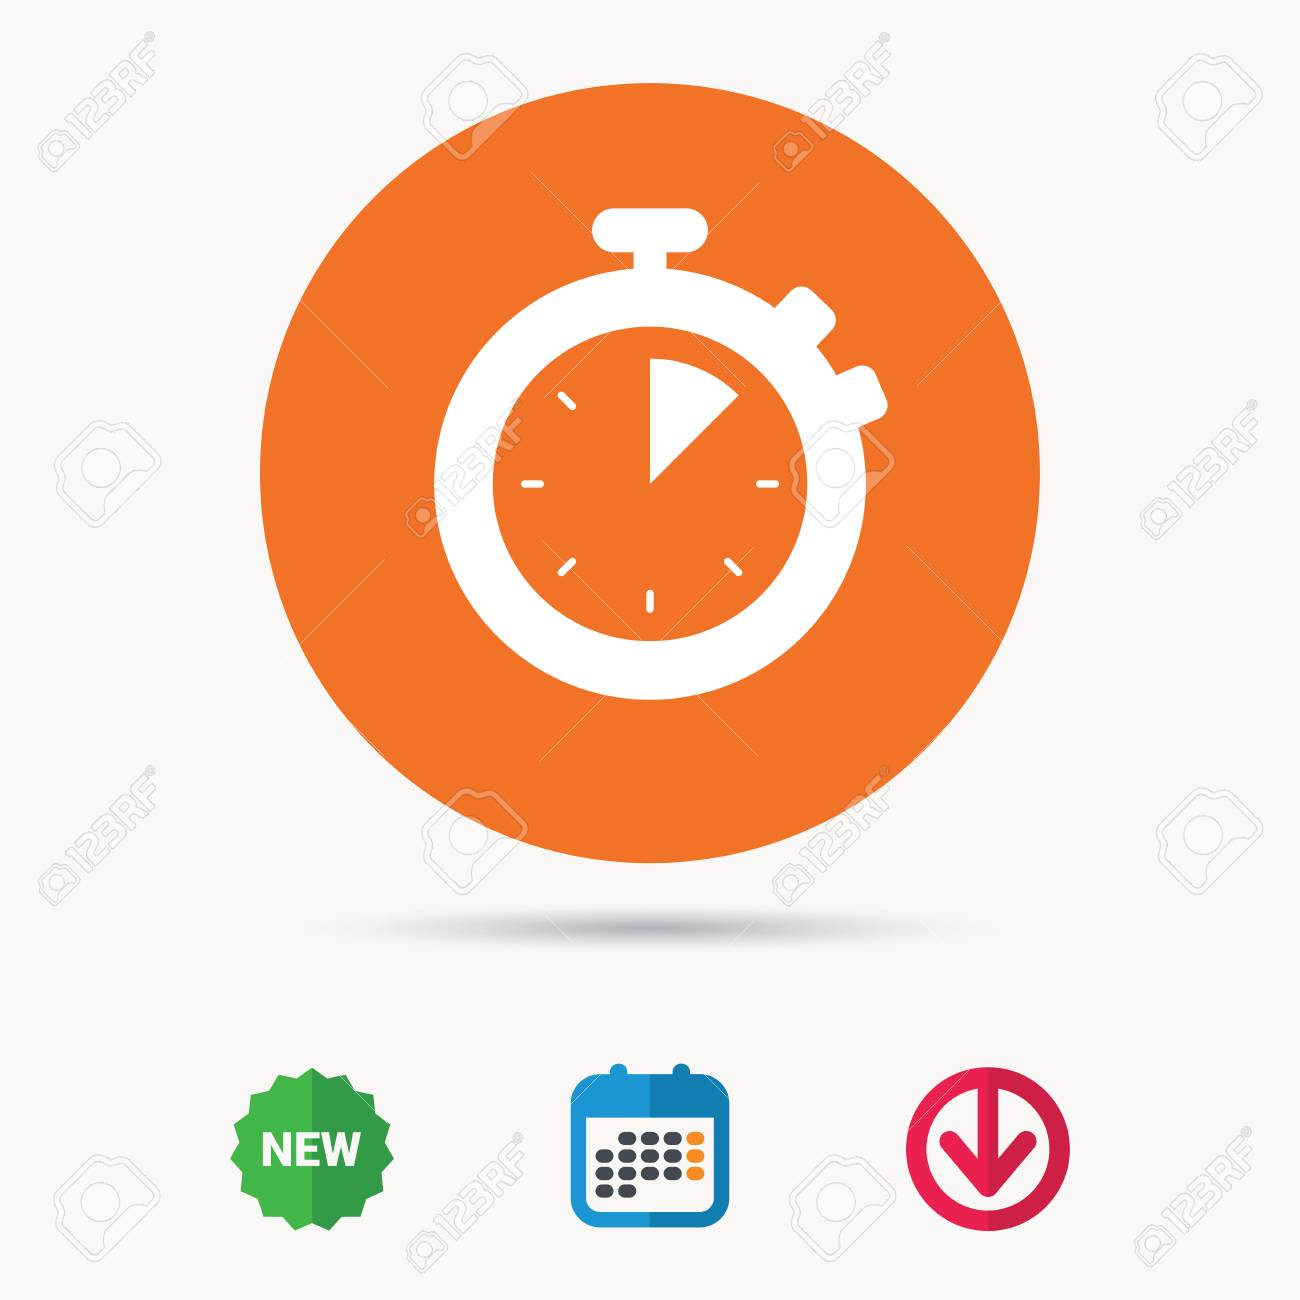 timer or clock device symbol calendar download arrow and new tag